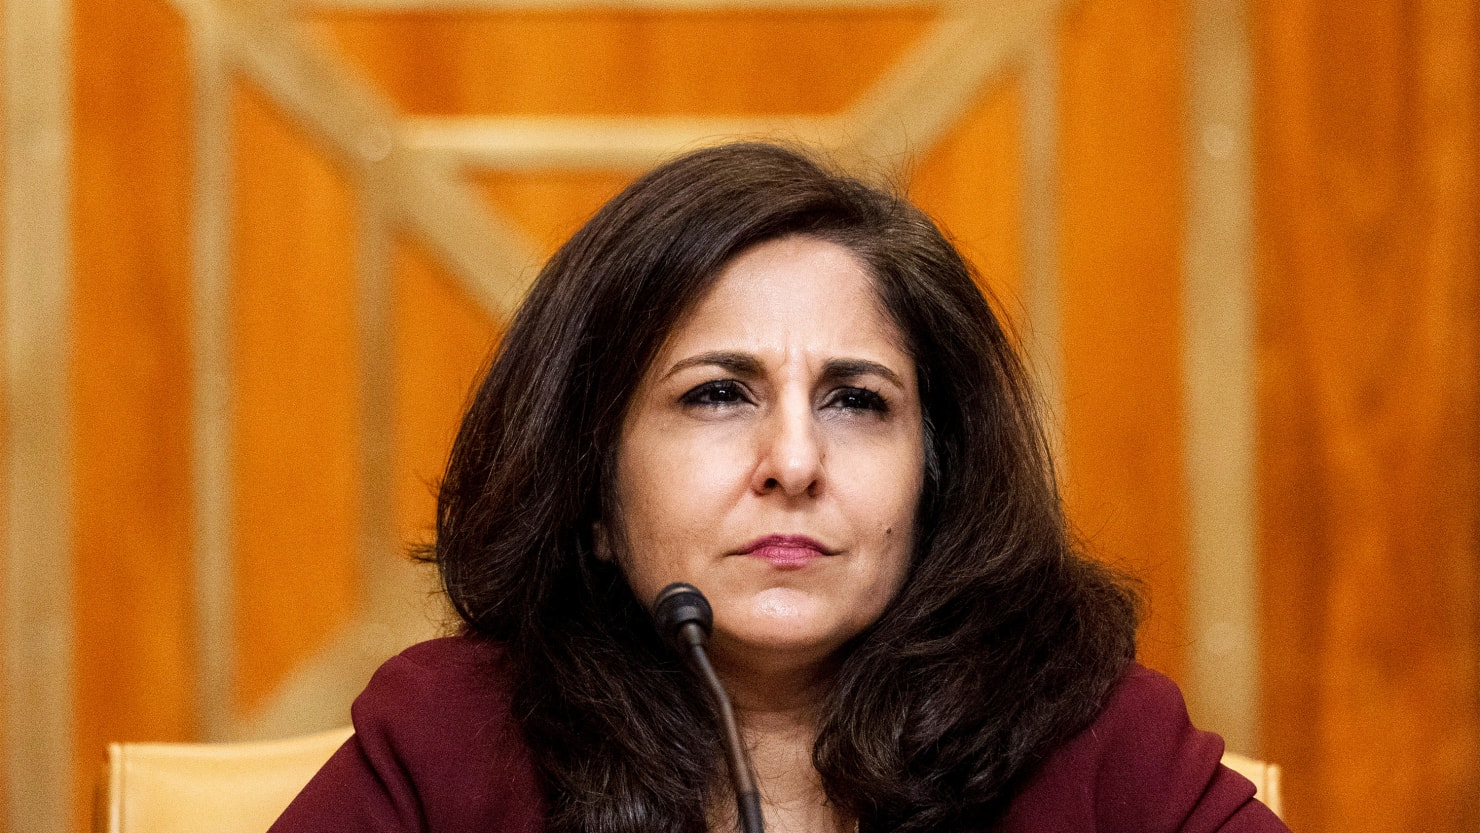 Neera Tanden: How the Nomination for Biden's OMB Director Failed